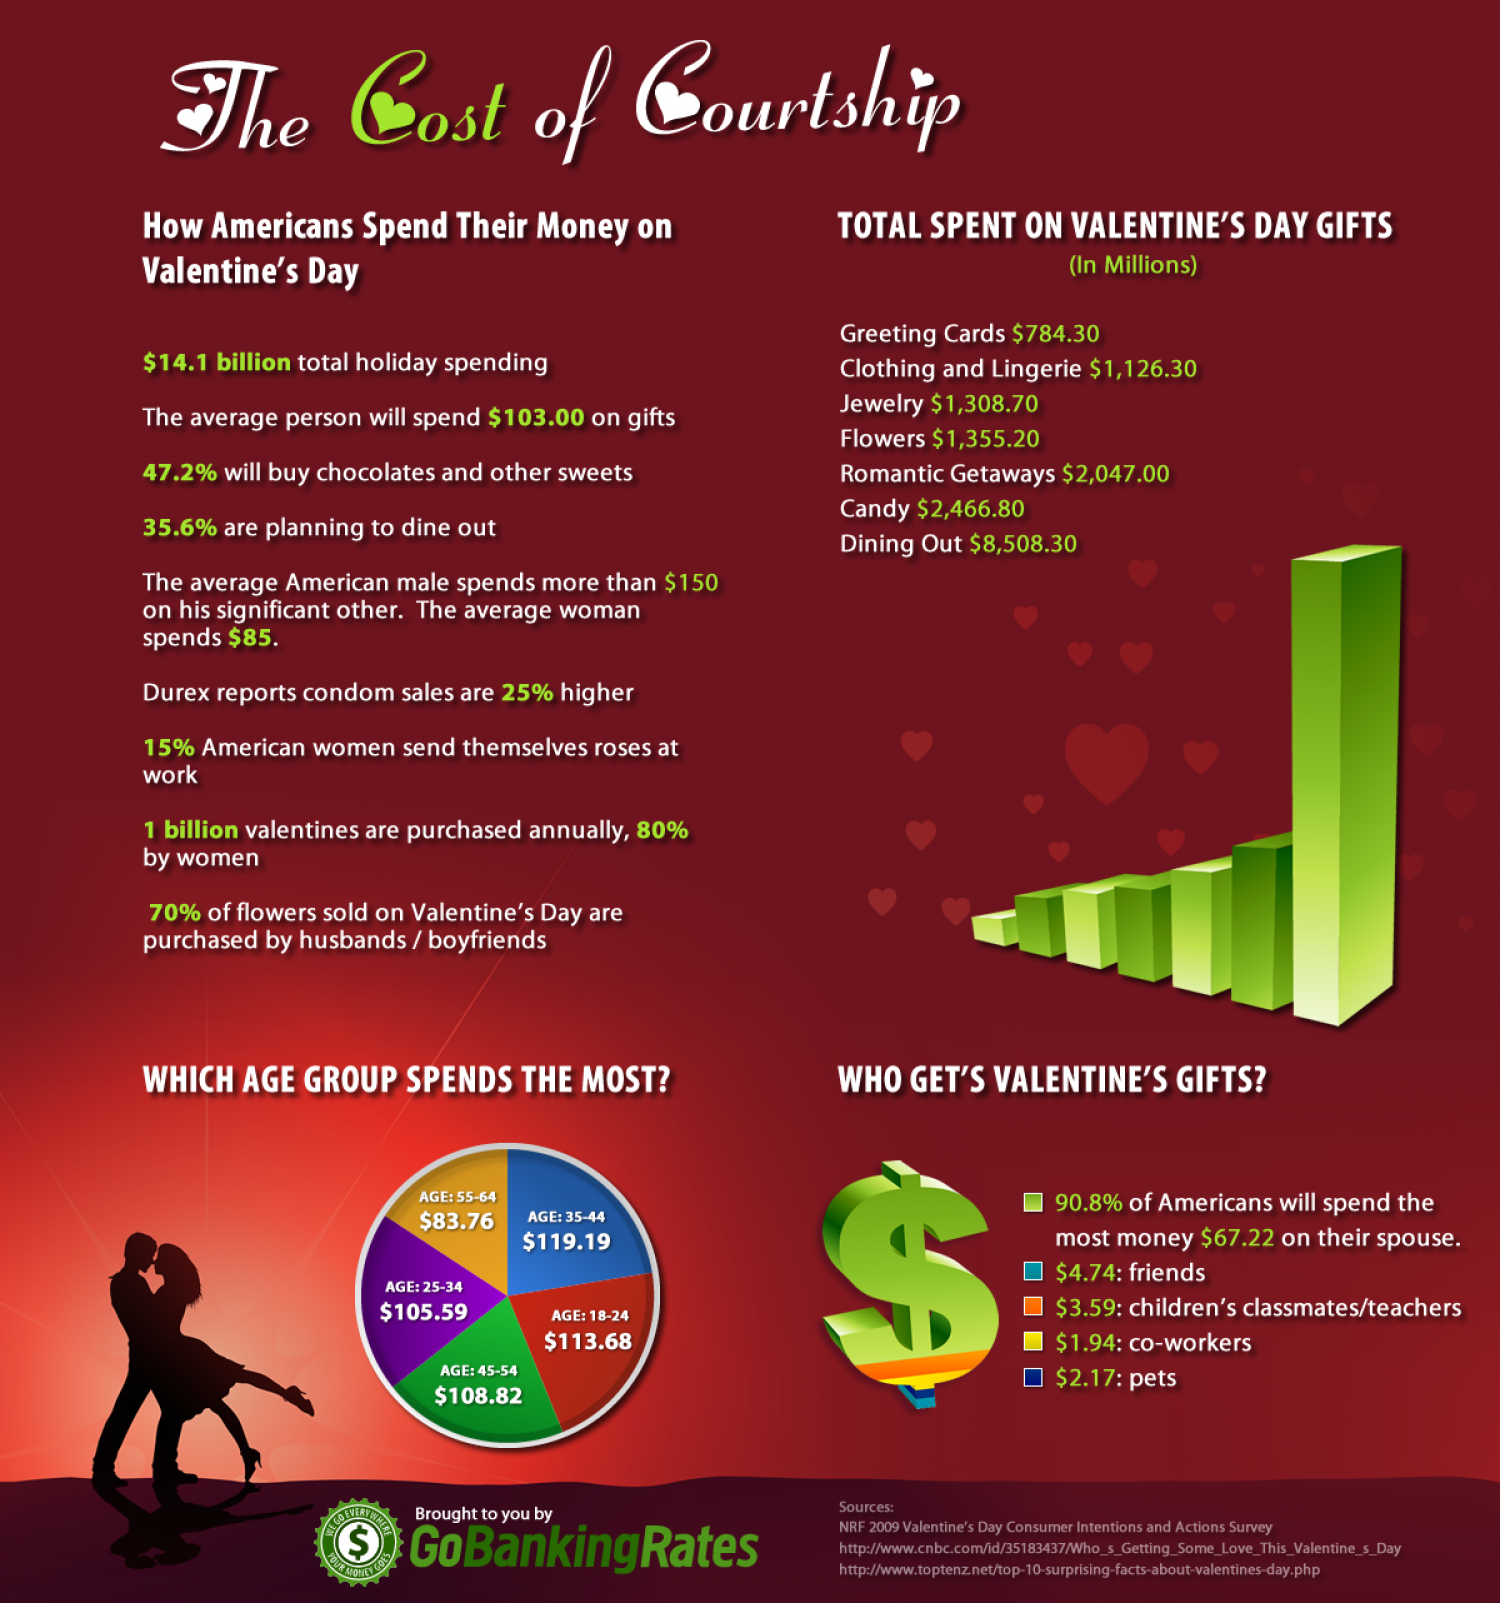 The Cost of Courtship Infographic